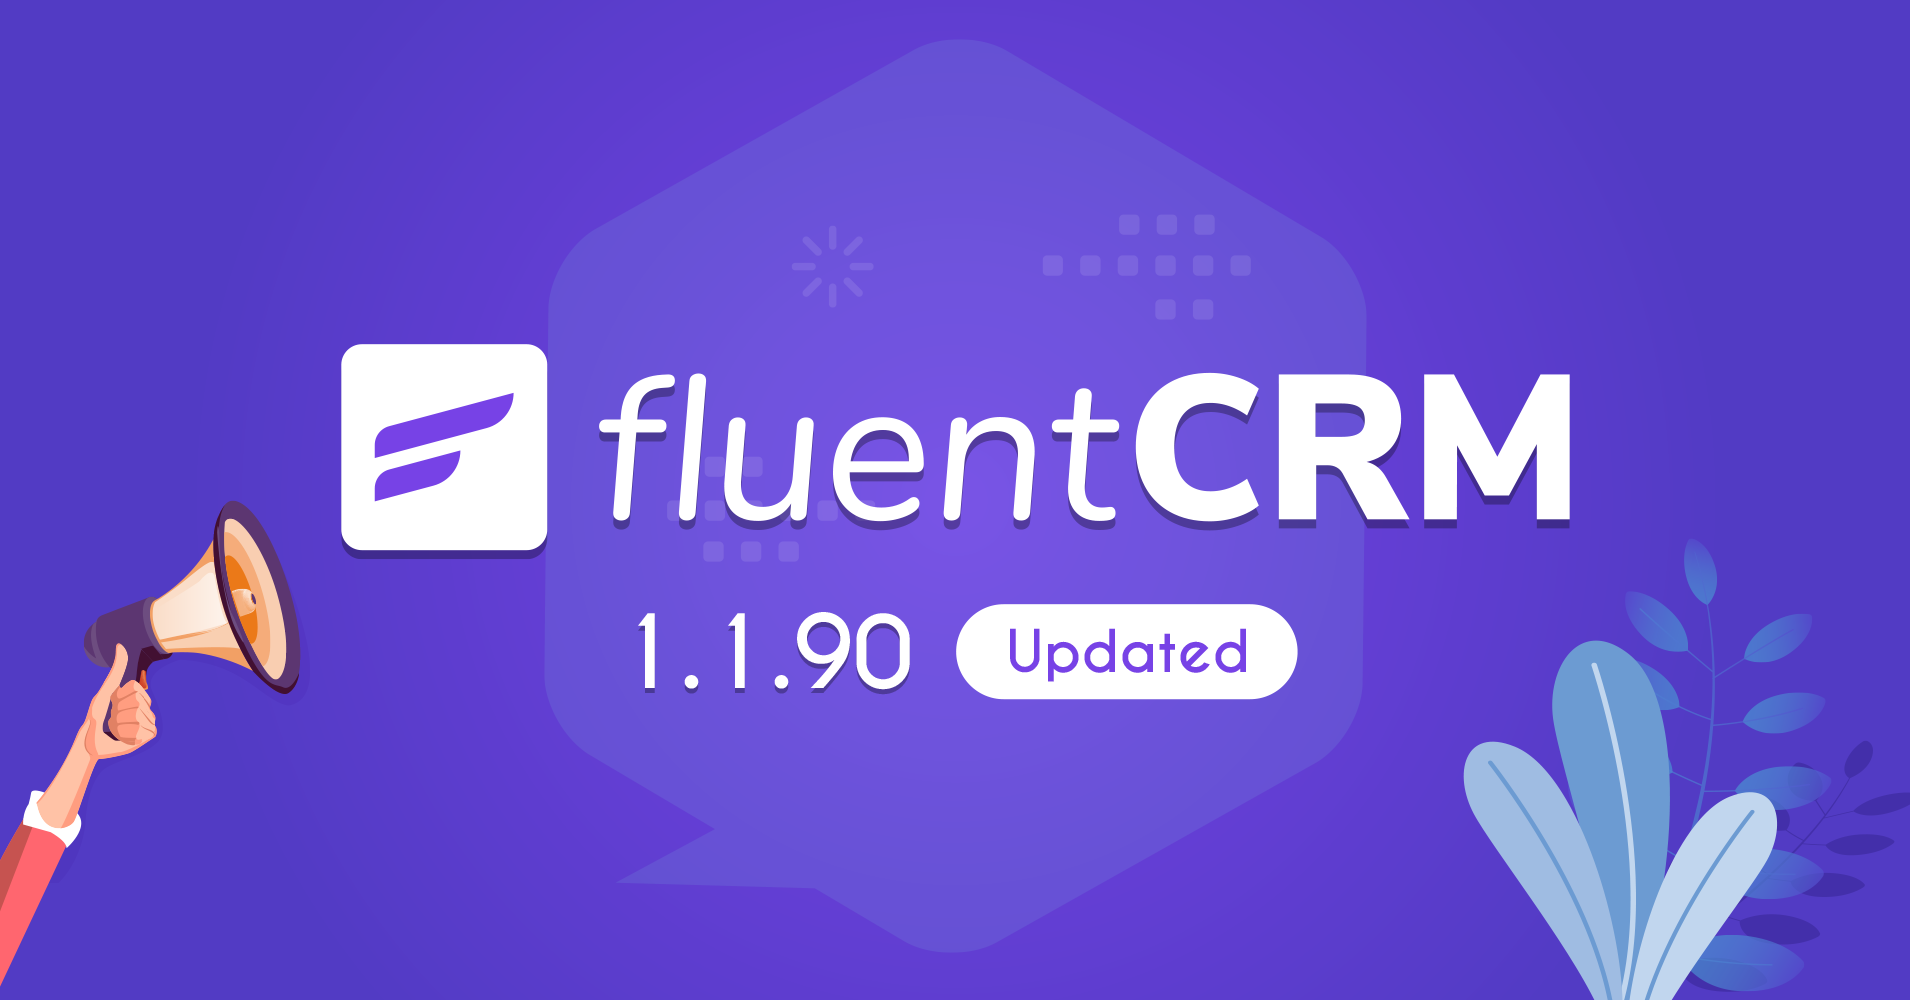 FluentCRM 1.1.90 – Exciting New Features and Updates